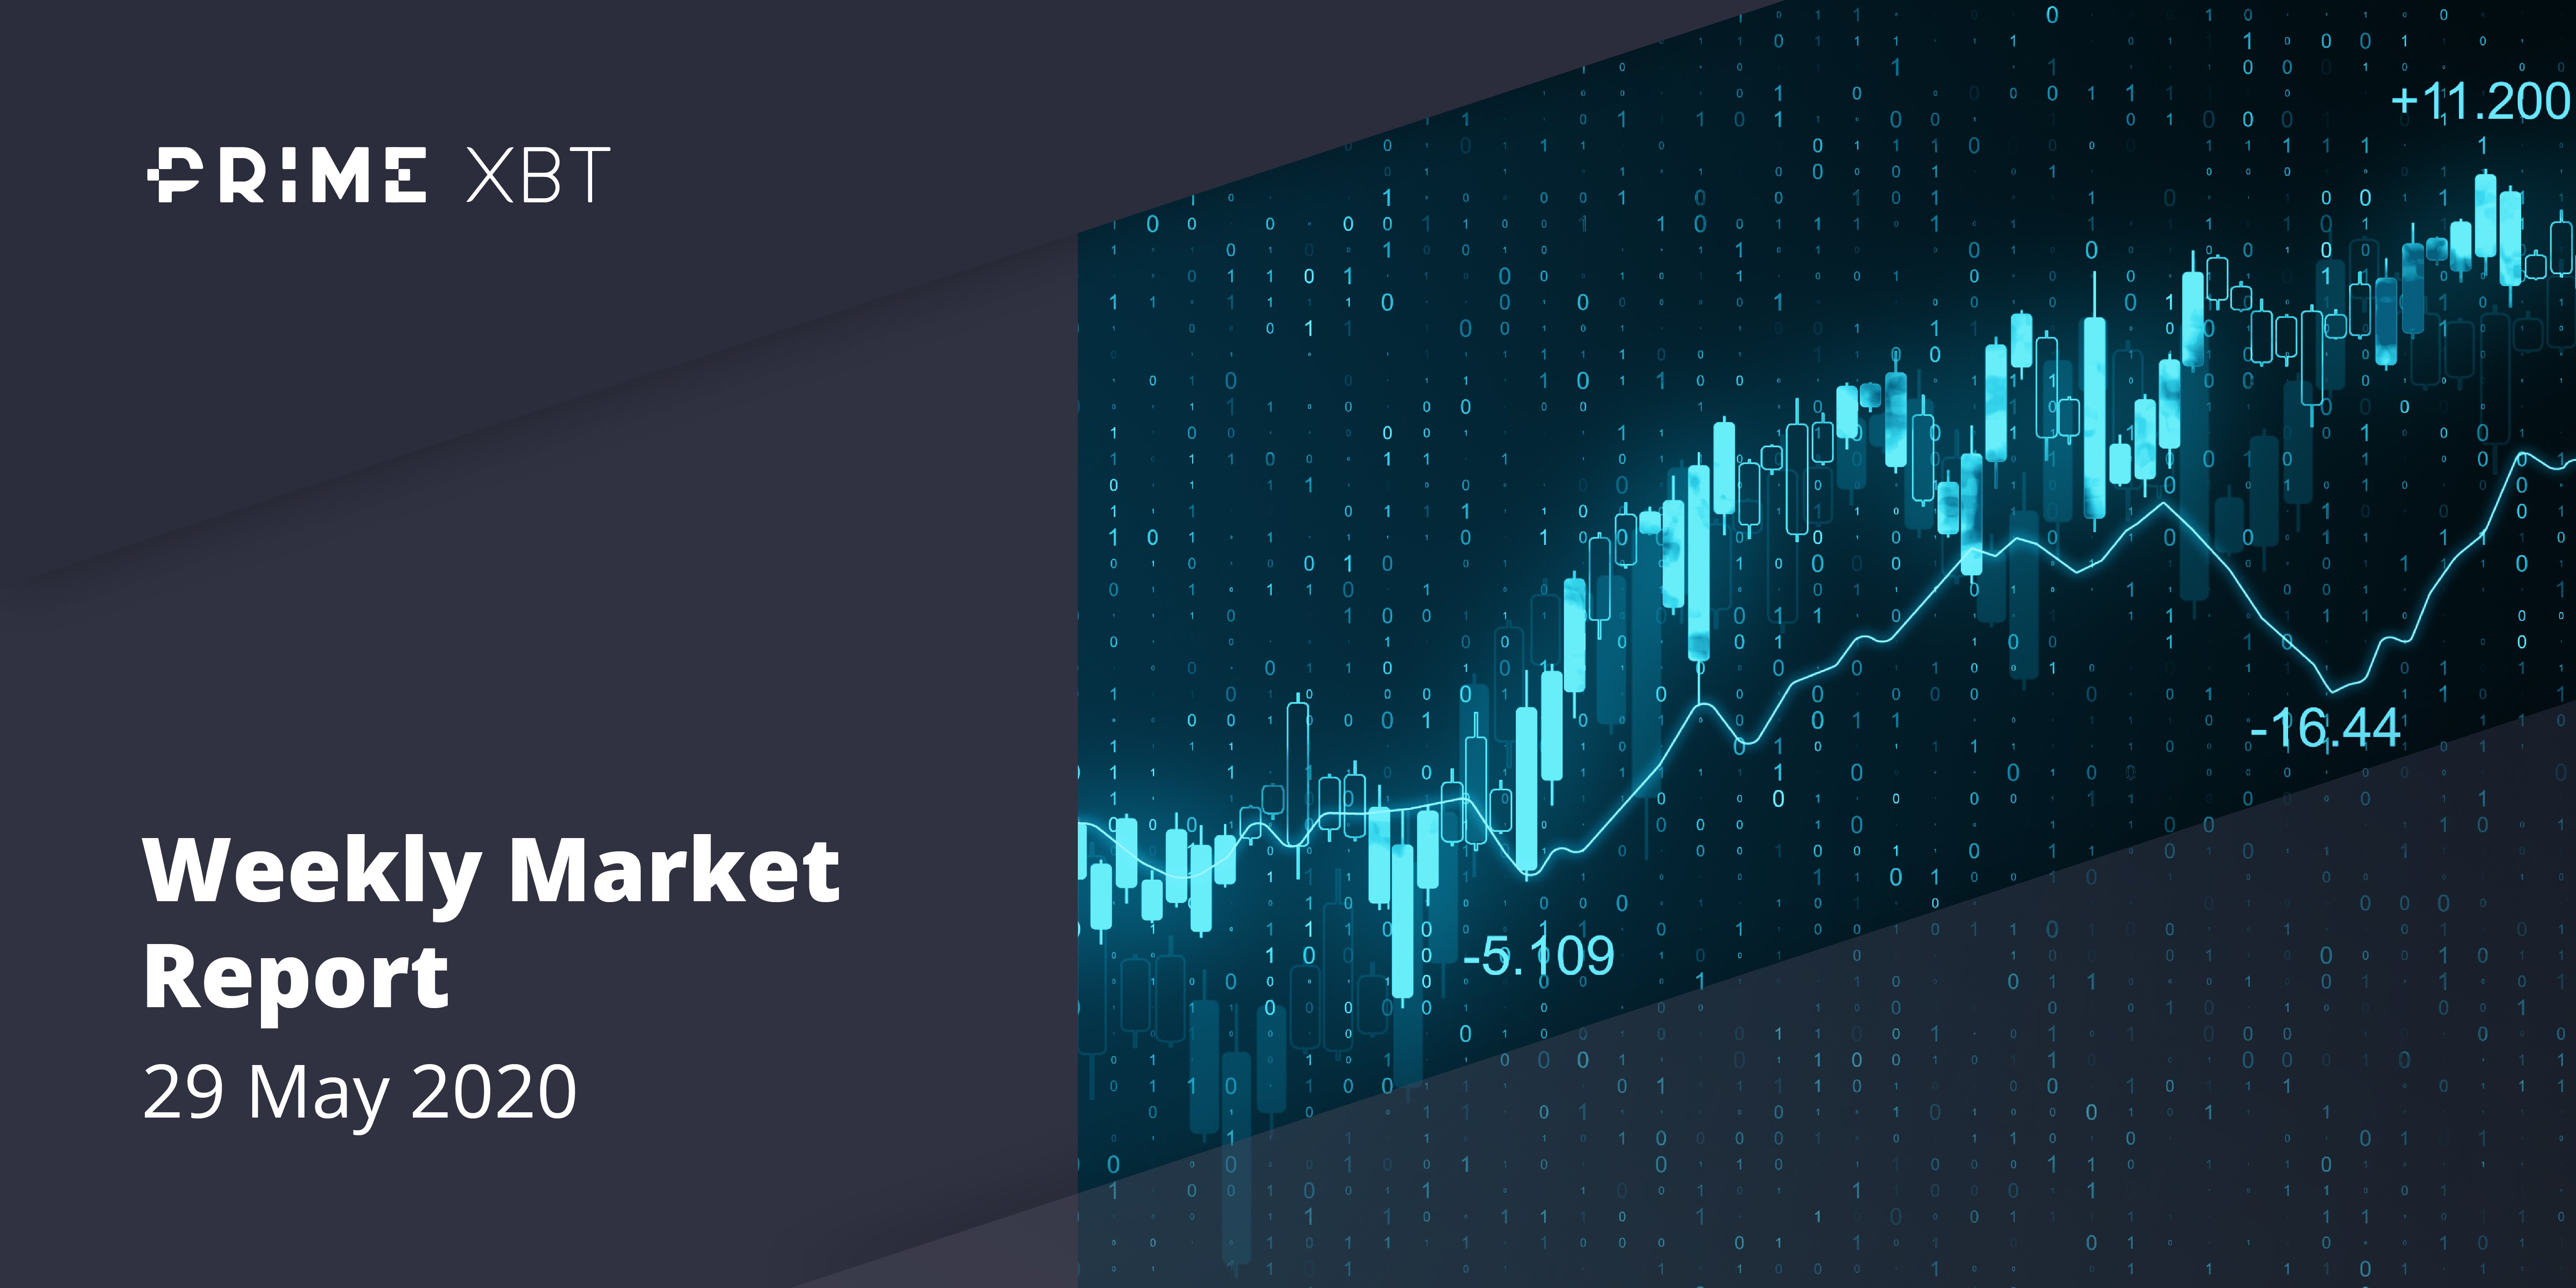 Crypto Market Report: Bitcoin Market Showing Strength But Volatility Flies as Month Winds Down — Greyscale Sweeping up Post Halving Coins - 29.05.20